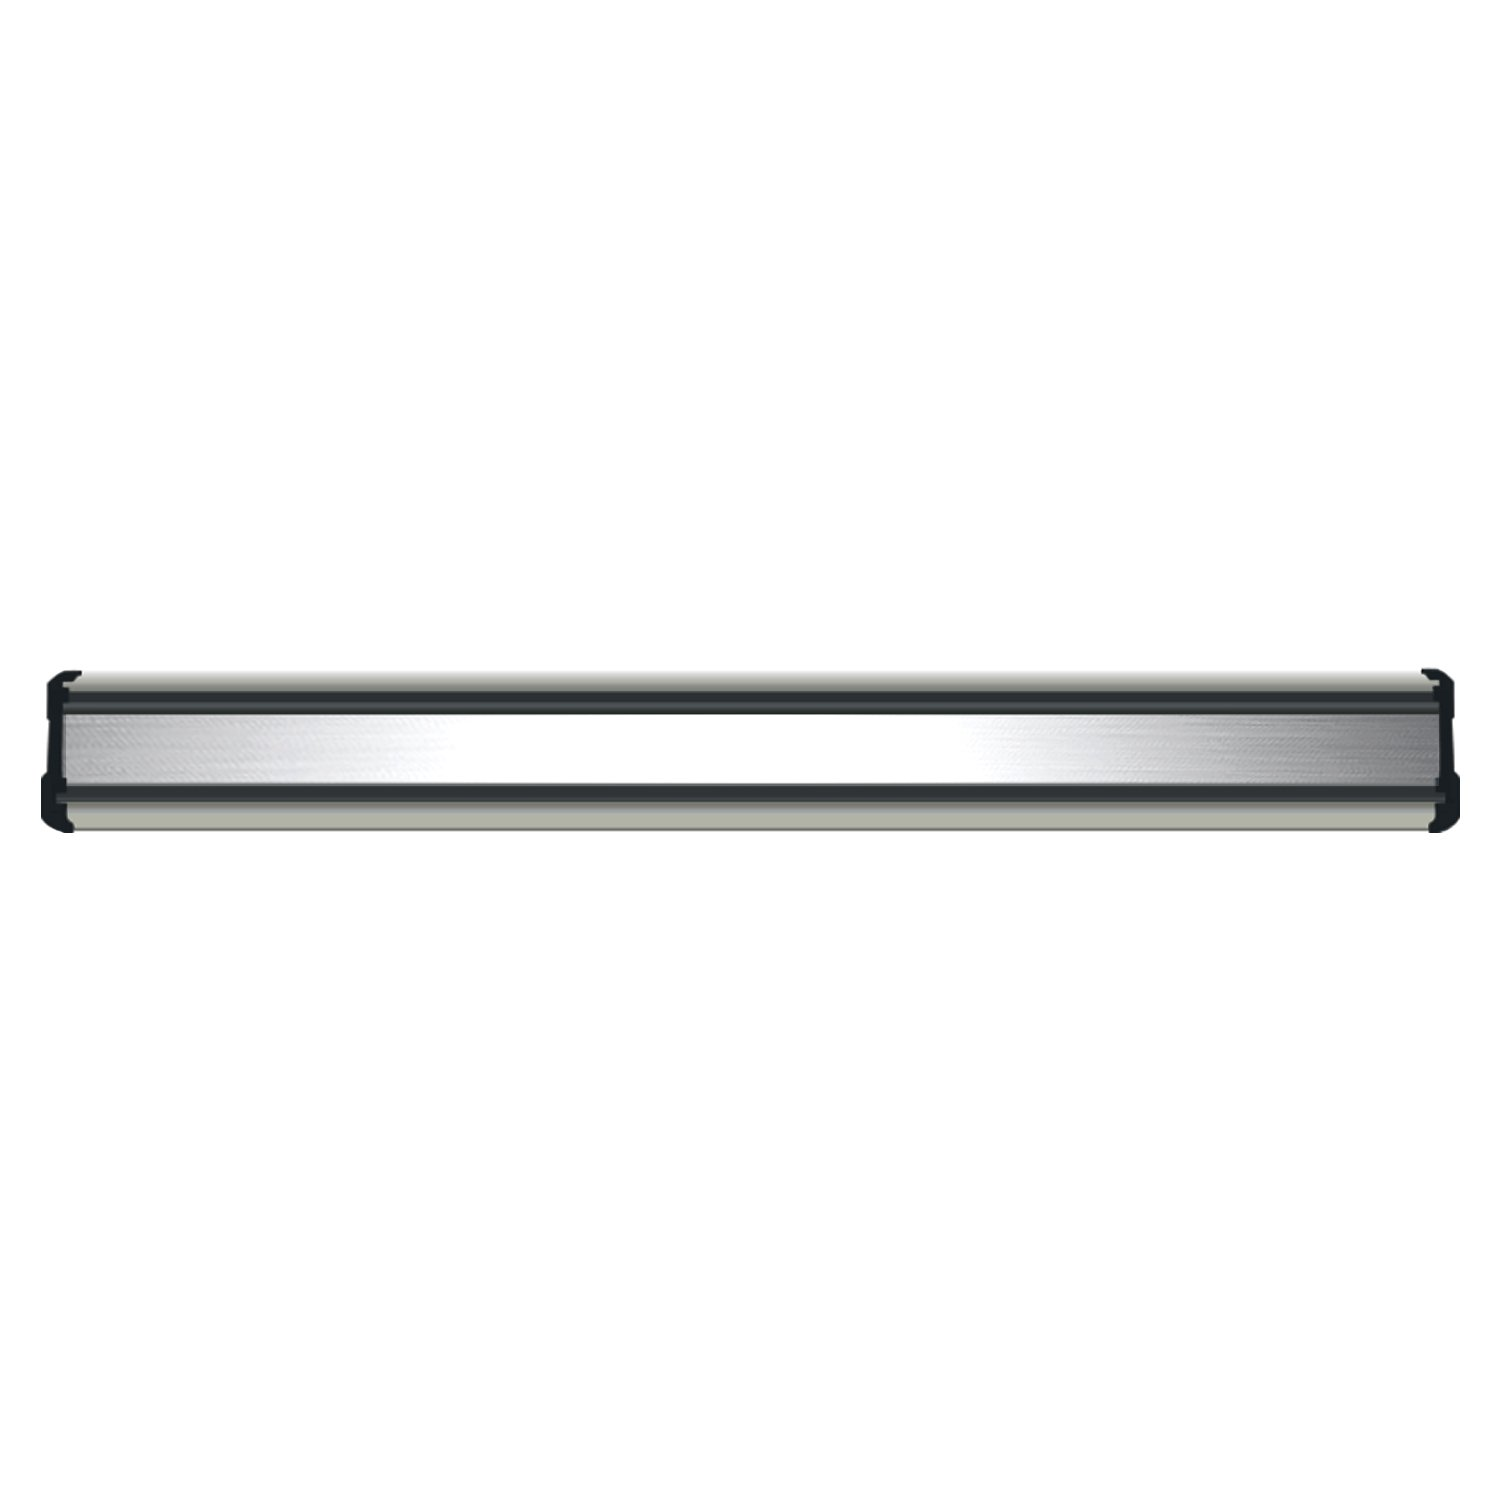 Zodae Magnetic Knife Strip 14 Inch Beautiful Stainless Steel Magnetic Knife Holder will Look Stunning in Your Kitchen - The Magnetic Knife Bar has Superior Strength Magnets